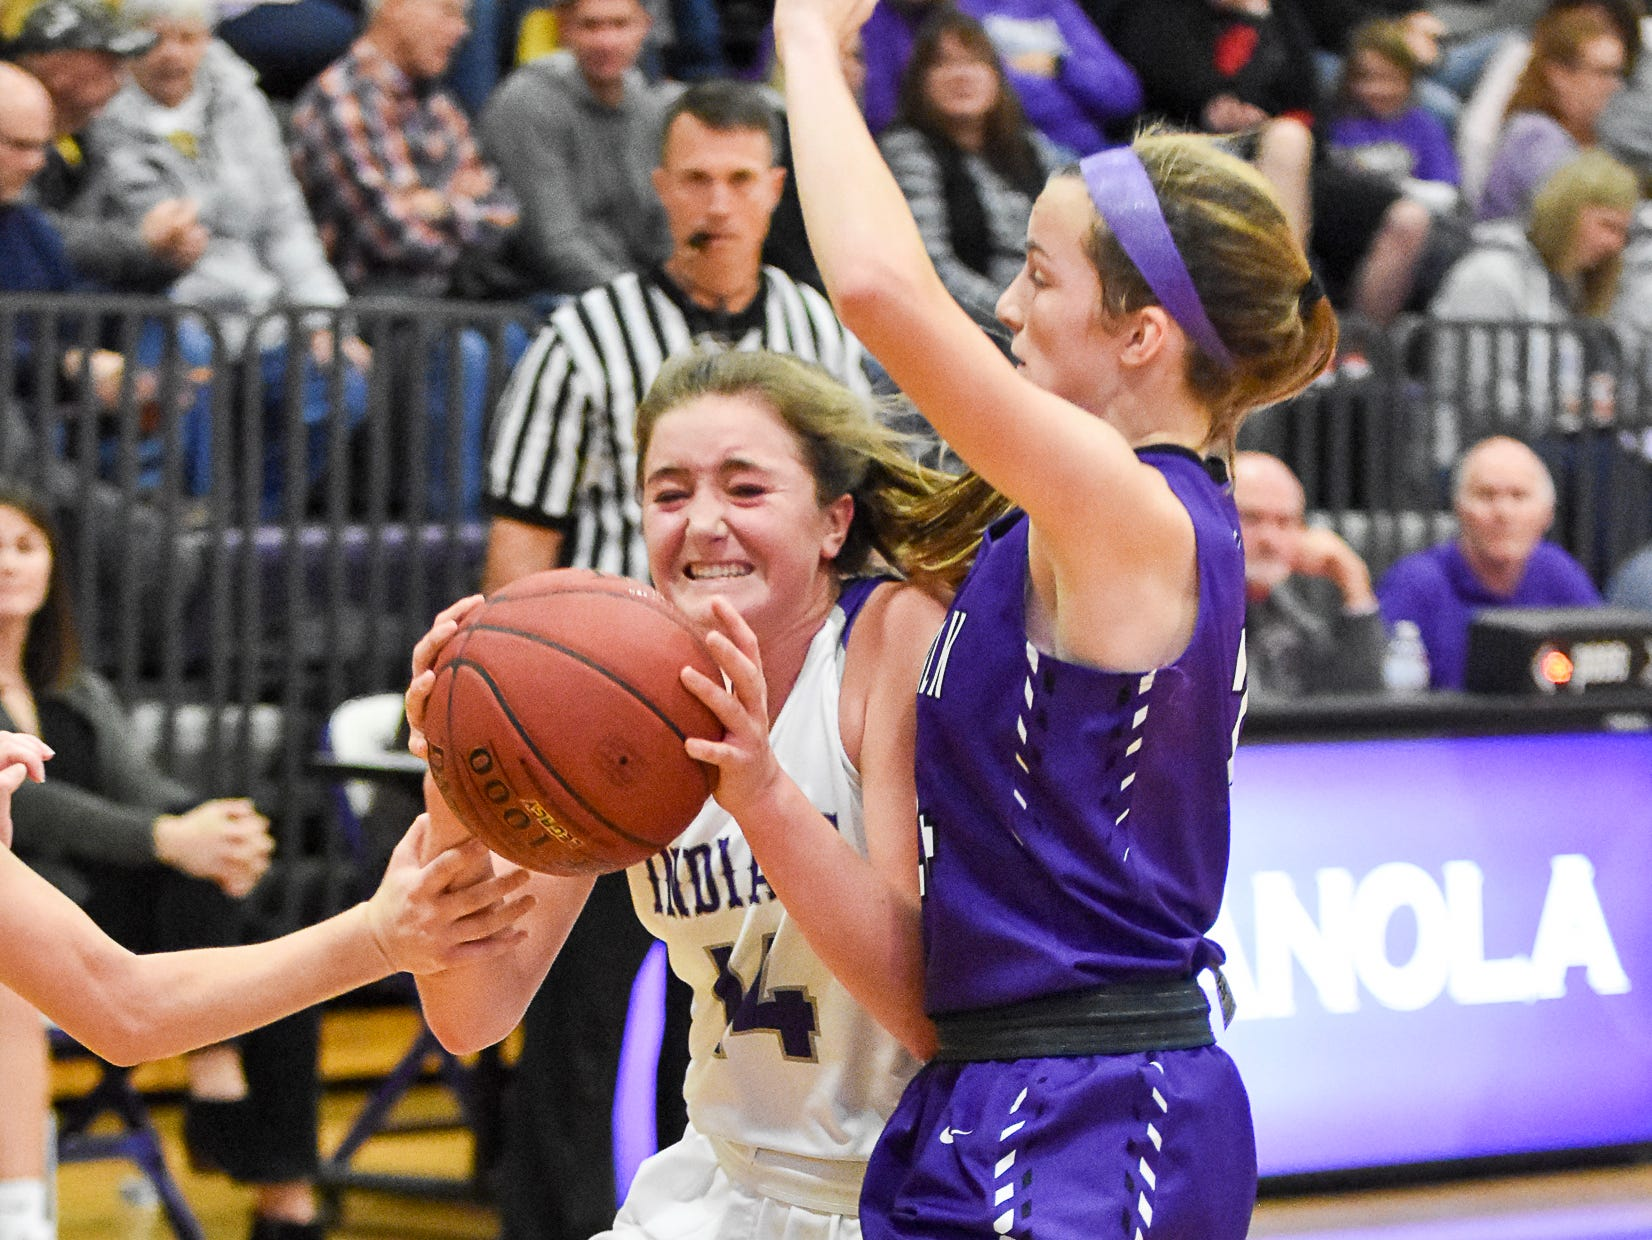 Indianola's Lauren Blake fights to keep the ball. The Indianola girls' basketball team picked up their first win of the season with a 57-34 home victory over Norwalk on Nov. 30, 2018.